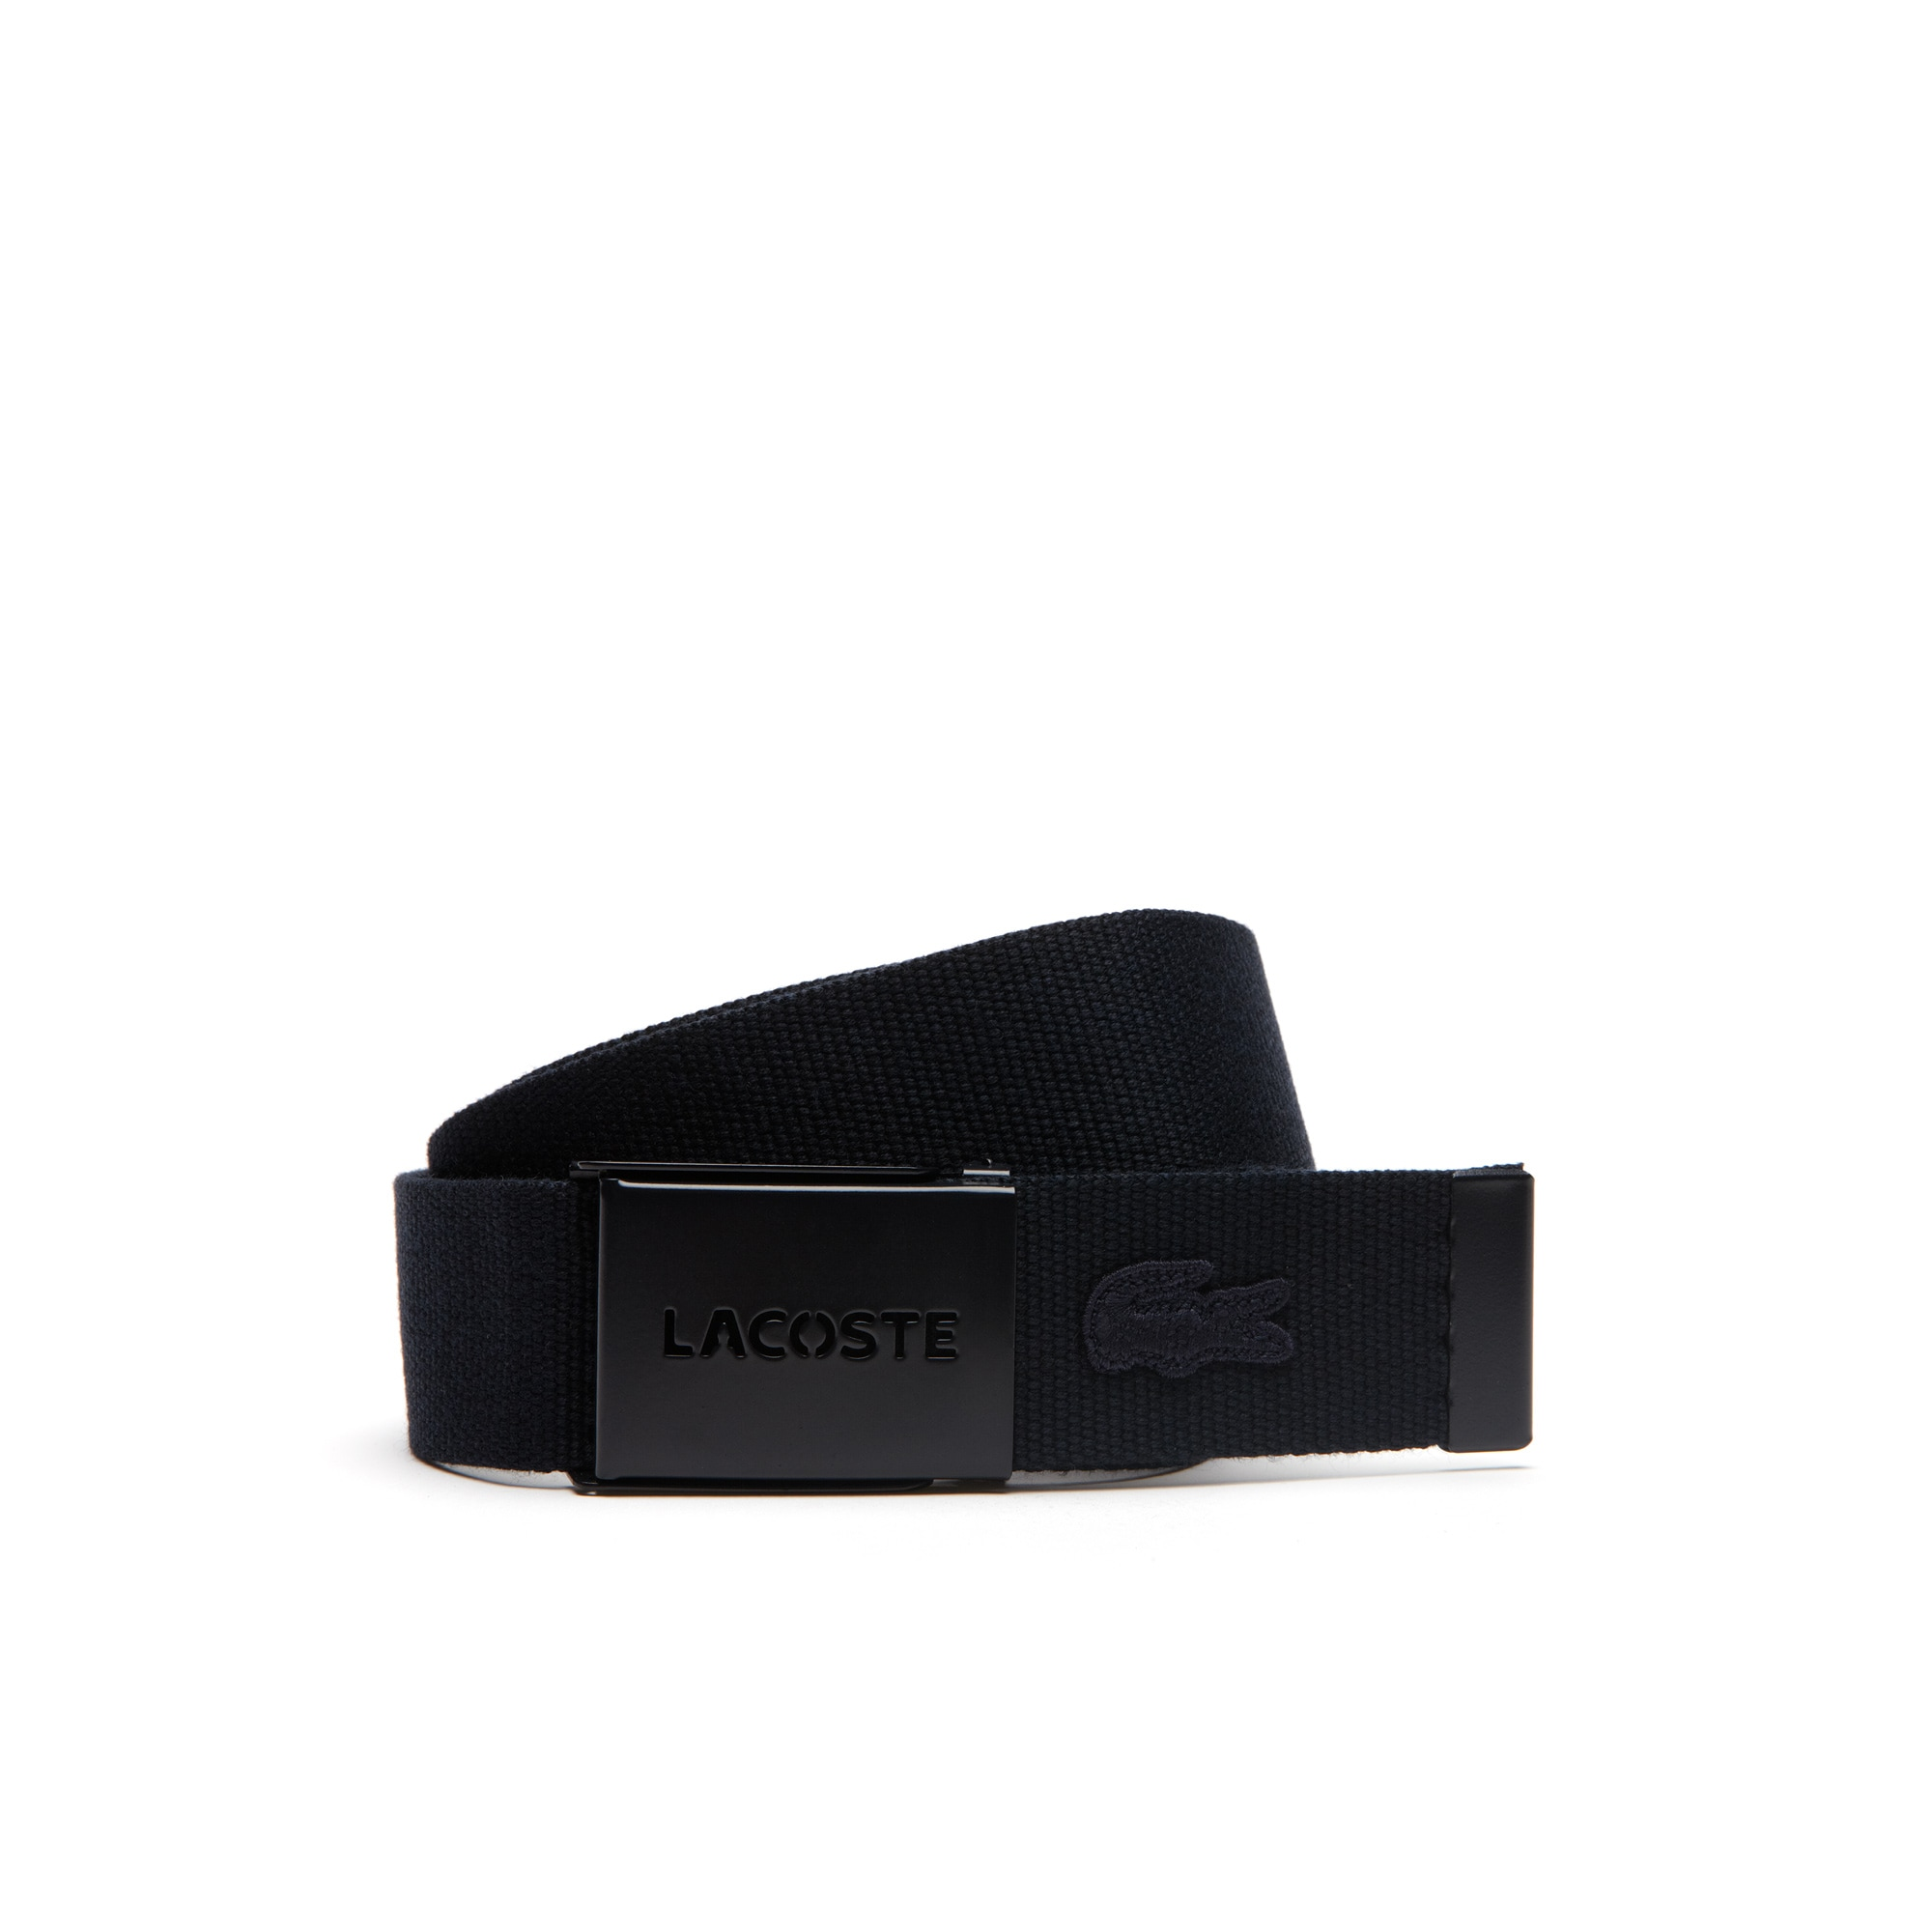 Men's Gift set of canvas belt with perforated monochrome Lacoste